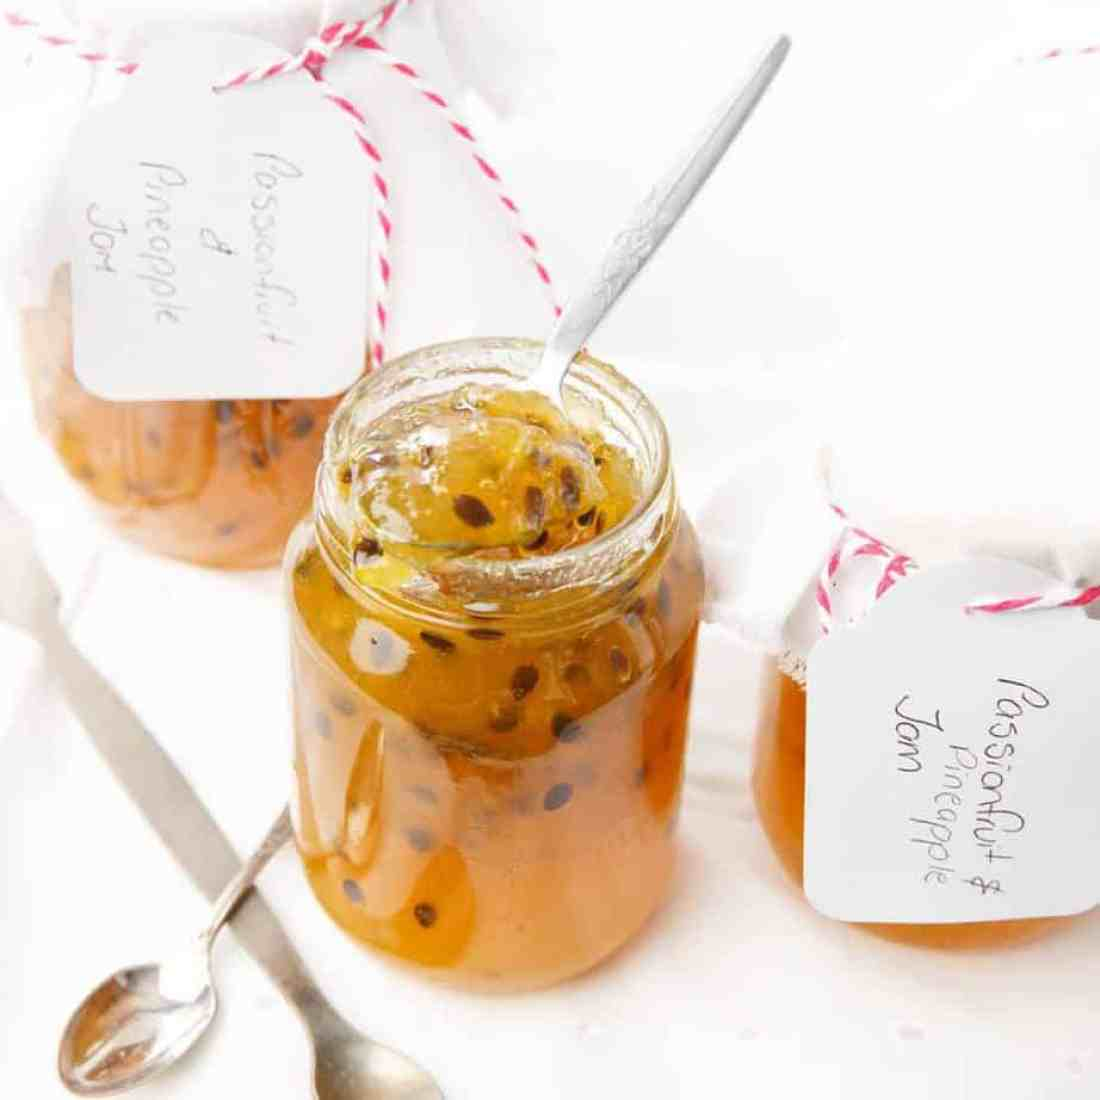 Thermomix Passionfruit Jam